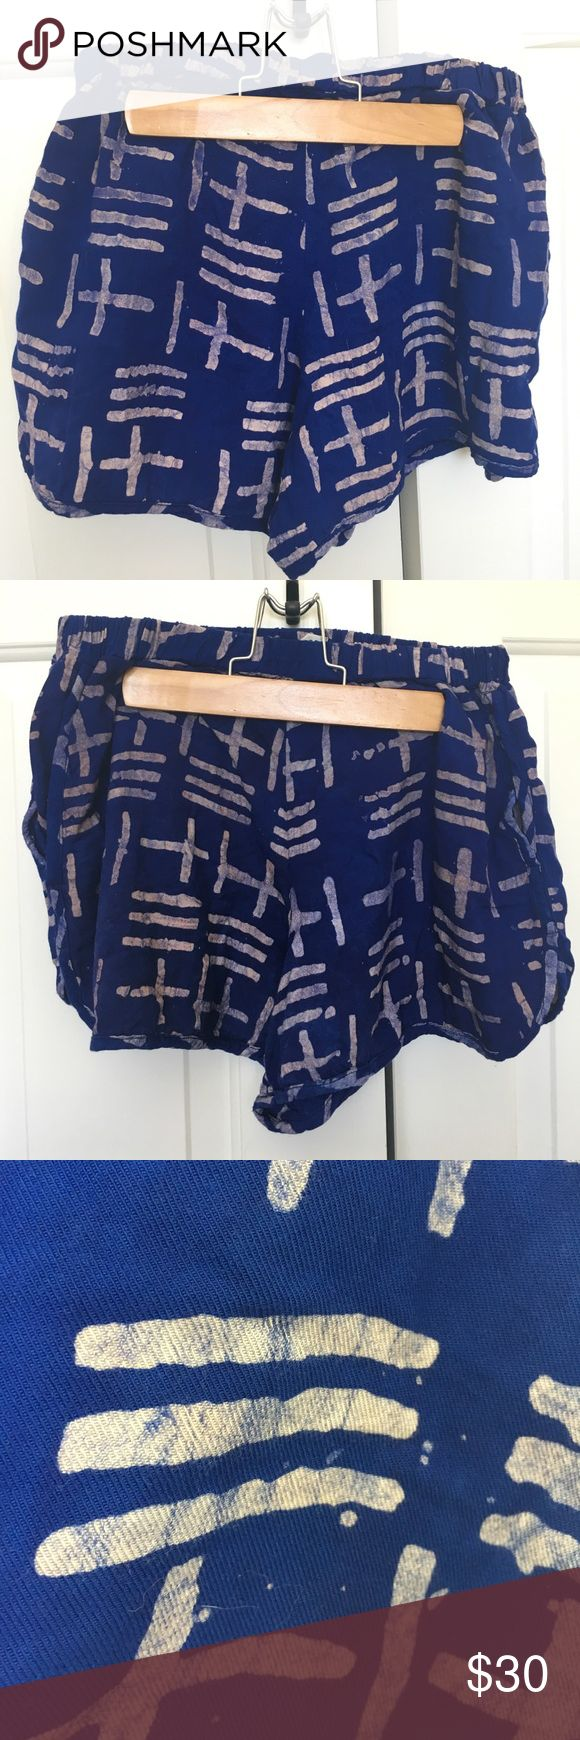 """Della Triton Track Shorts Vibrant indigo patterned shorts. Feature elastic waist and pockets. Ethically hand-dyed in Ghana.  Color: Indigo blue with graphic pattern  Size: Medium Condition: EUC, worn once Price: $30 Material: 100% rayon Measurements: Waist (flat across, unstretched): 13"""", length: 12.5"""". Della Shorts"""